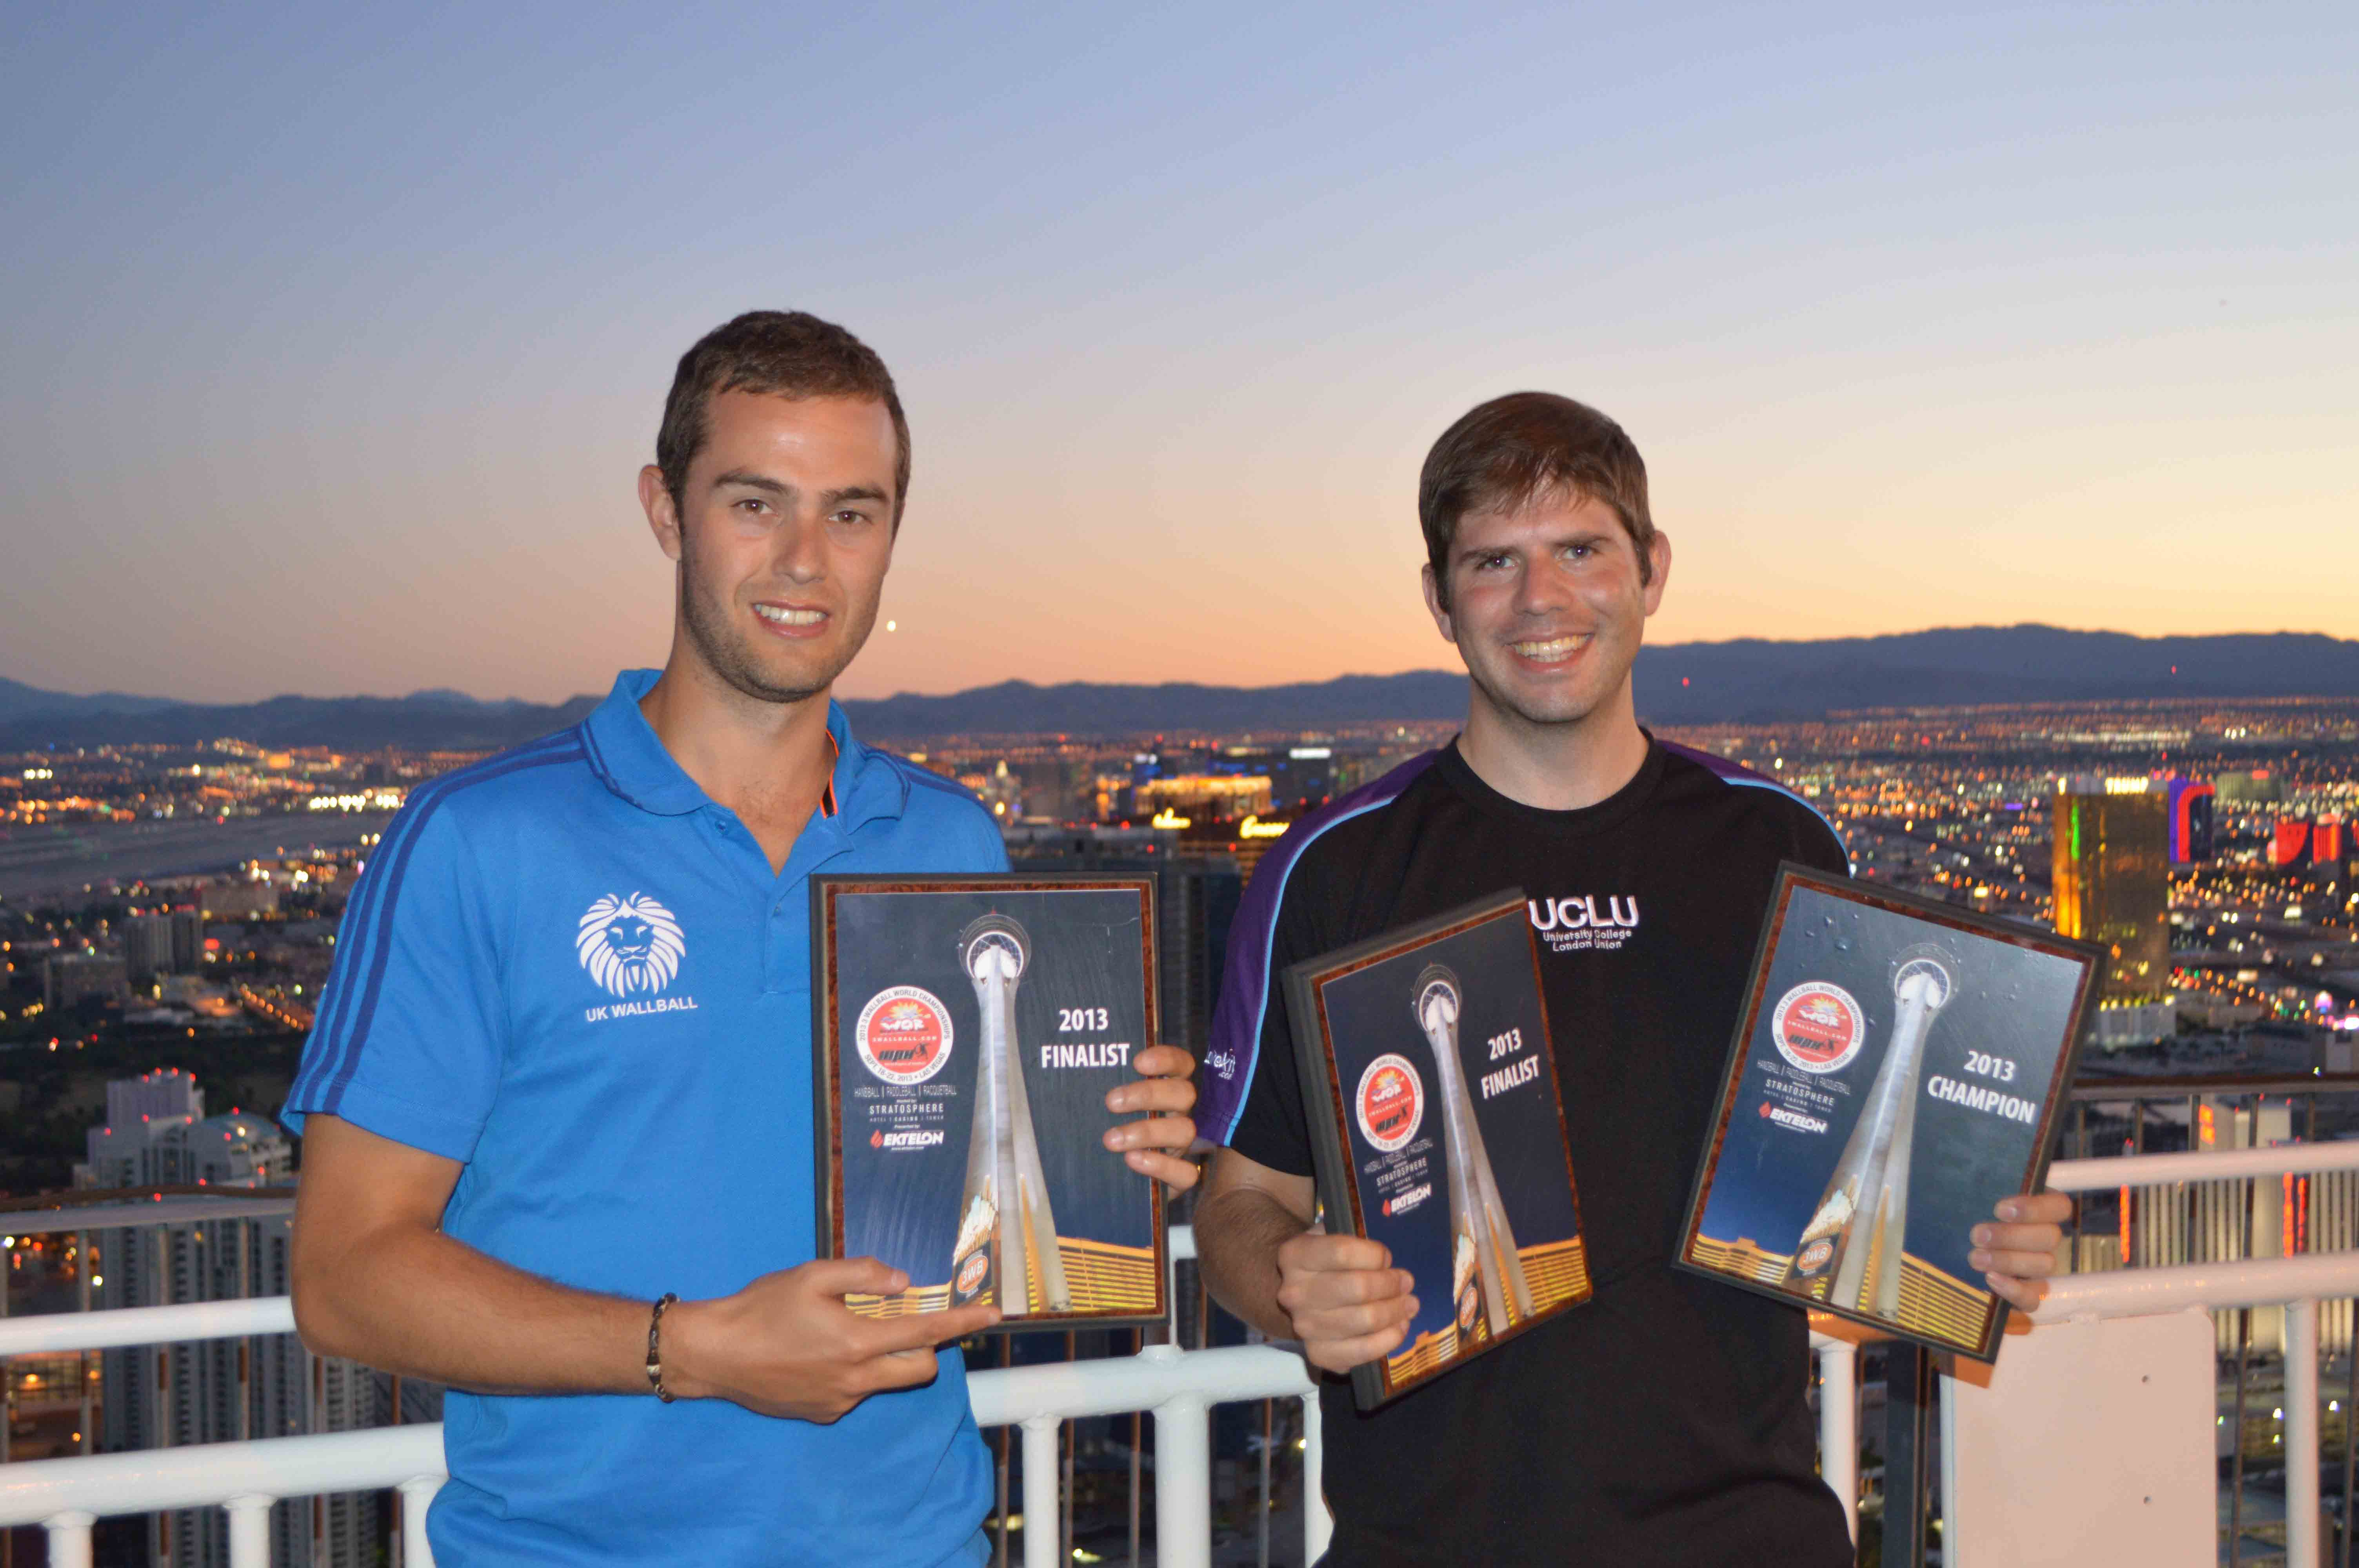 A tired looking Dan & Luke with their plaques on a sunset over the strip Sunday night.